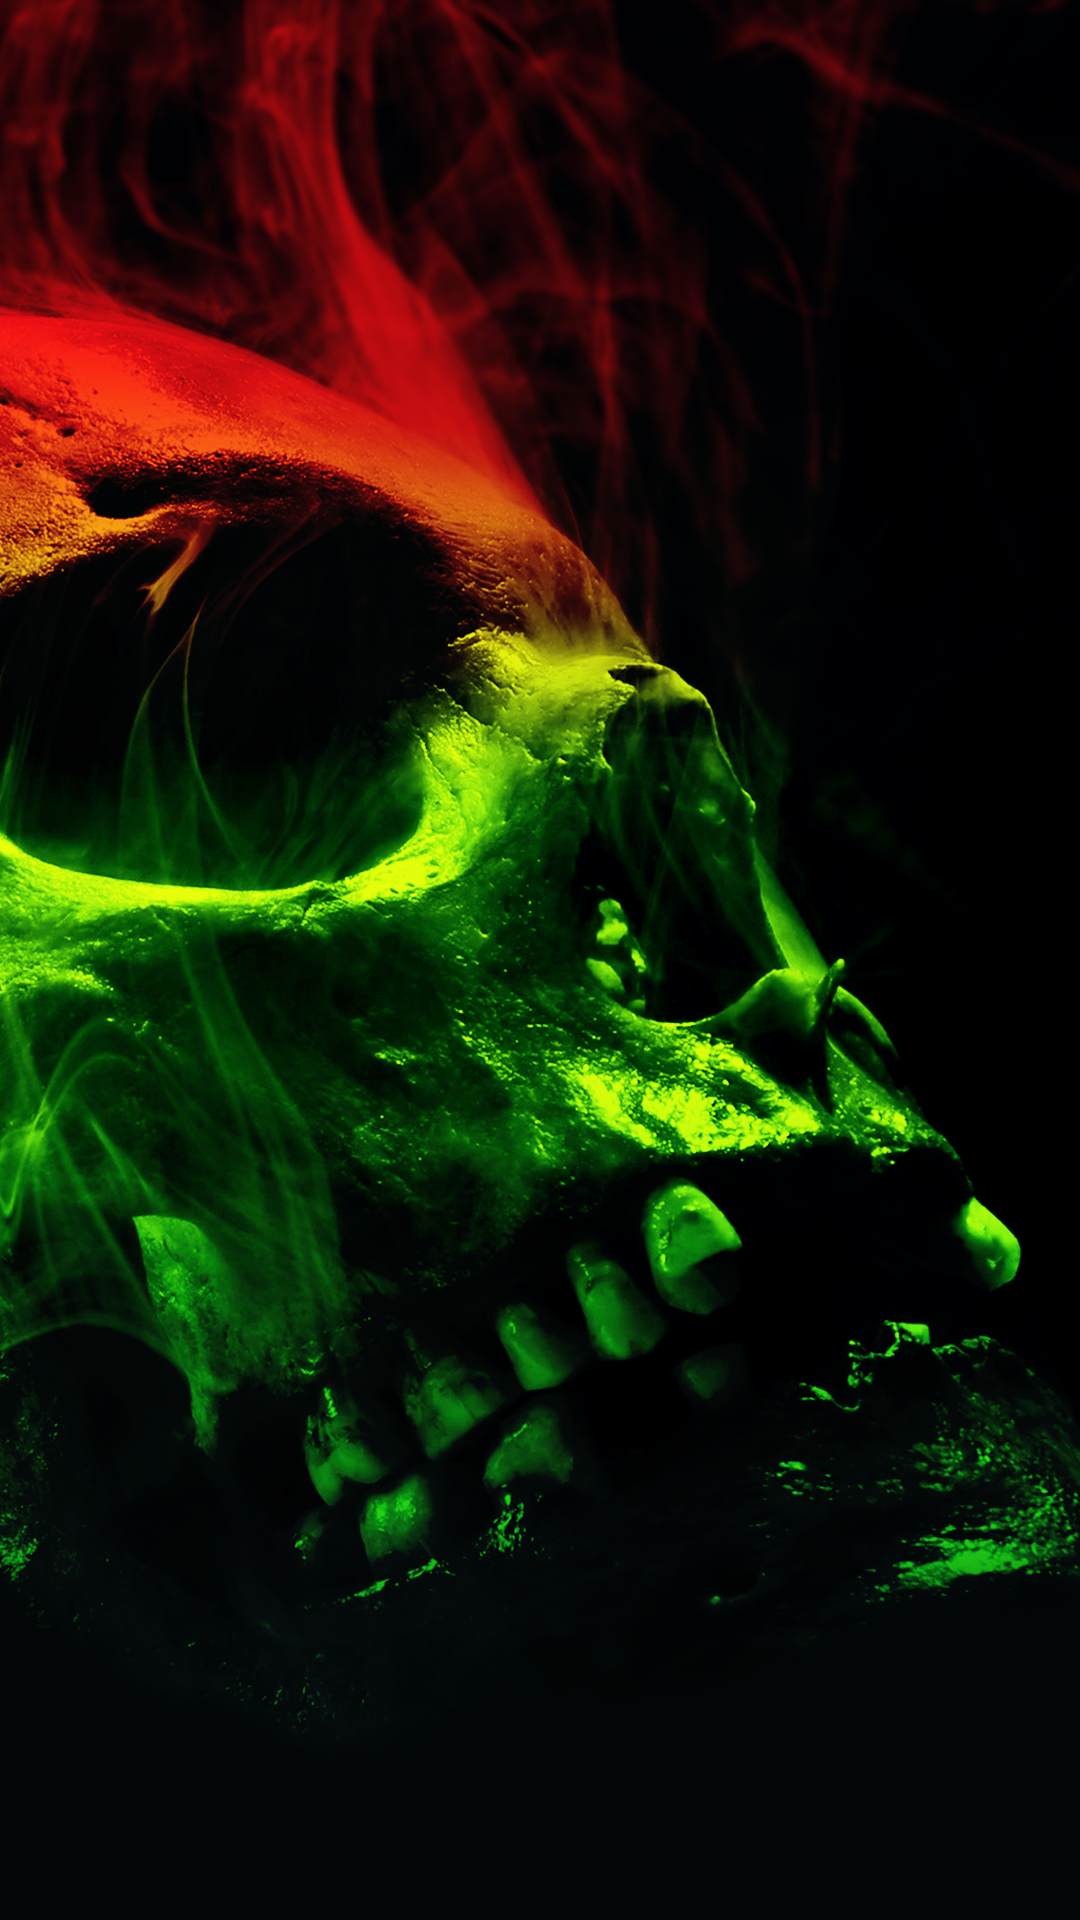 Download Our HD Smoking Skull Wallpaper For Android Phones    0524